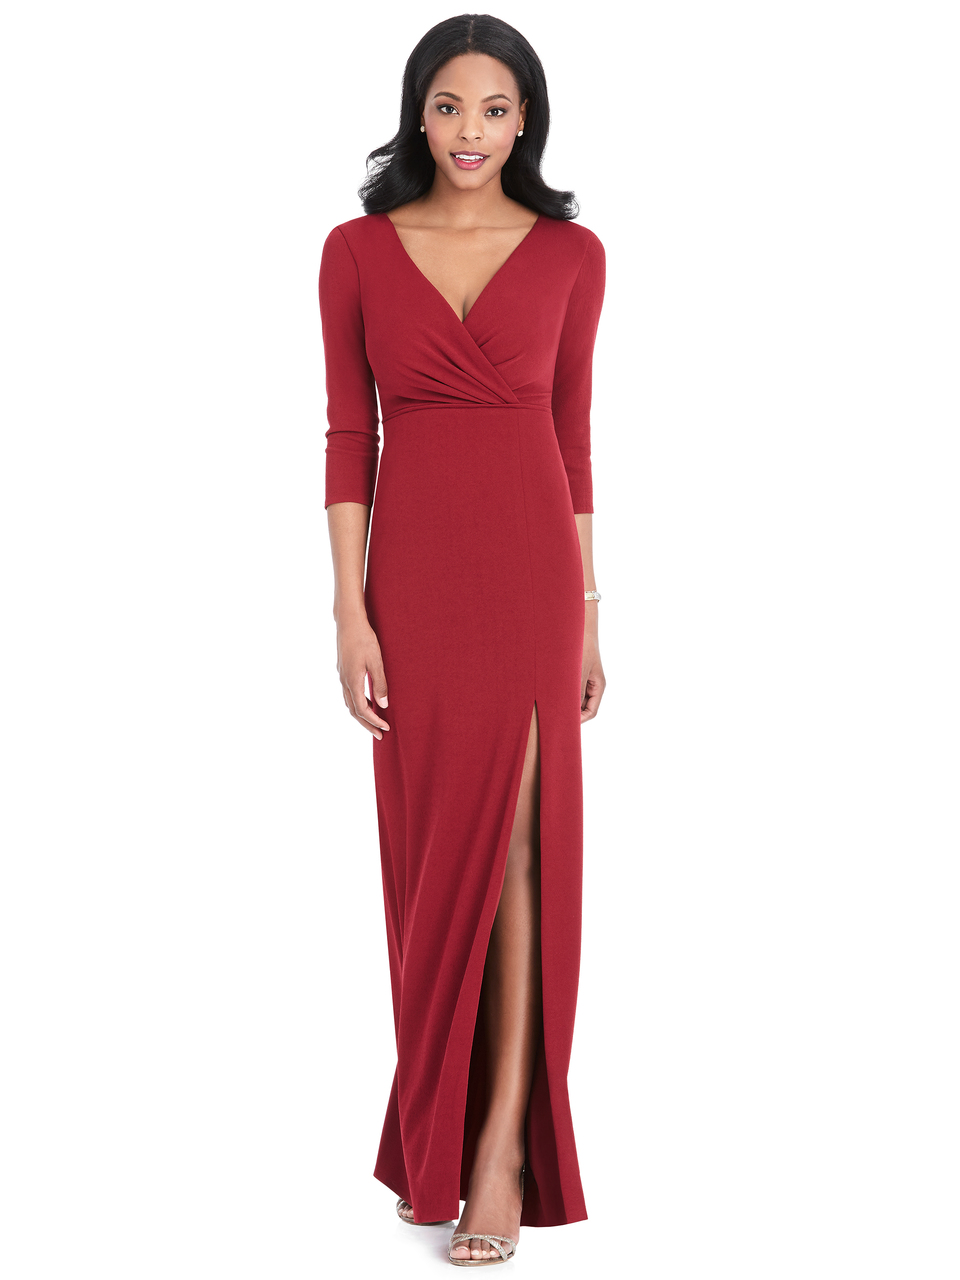 b95c5312f24 Full length stretch crepe dress w  3 4 length sleeves and draped surplice  bodice